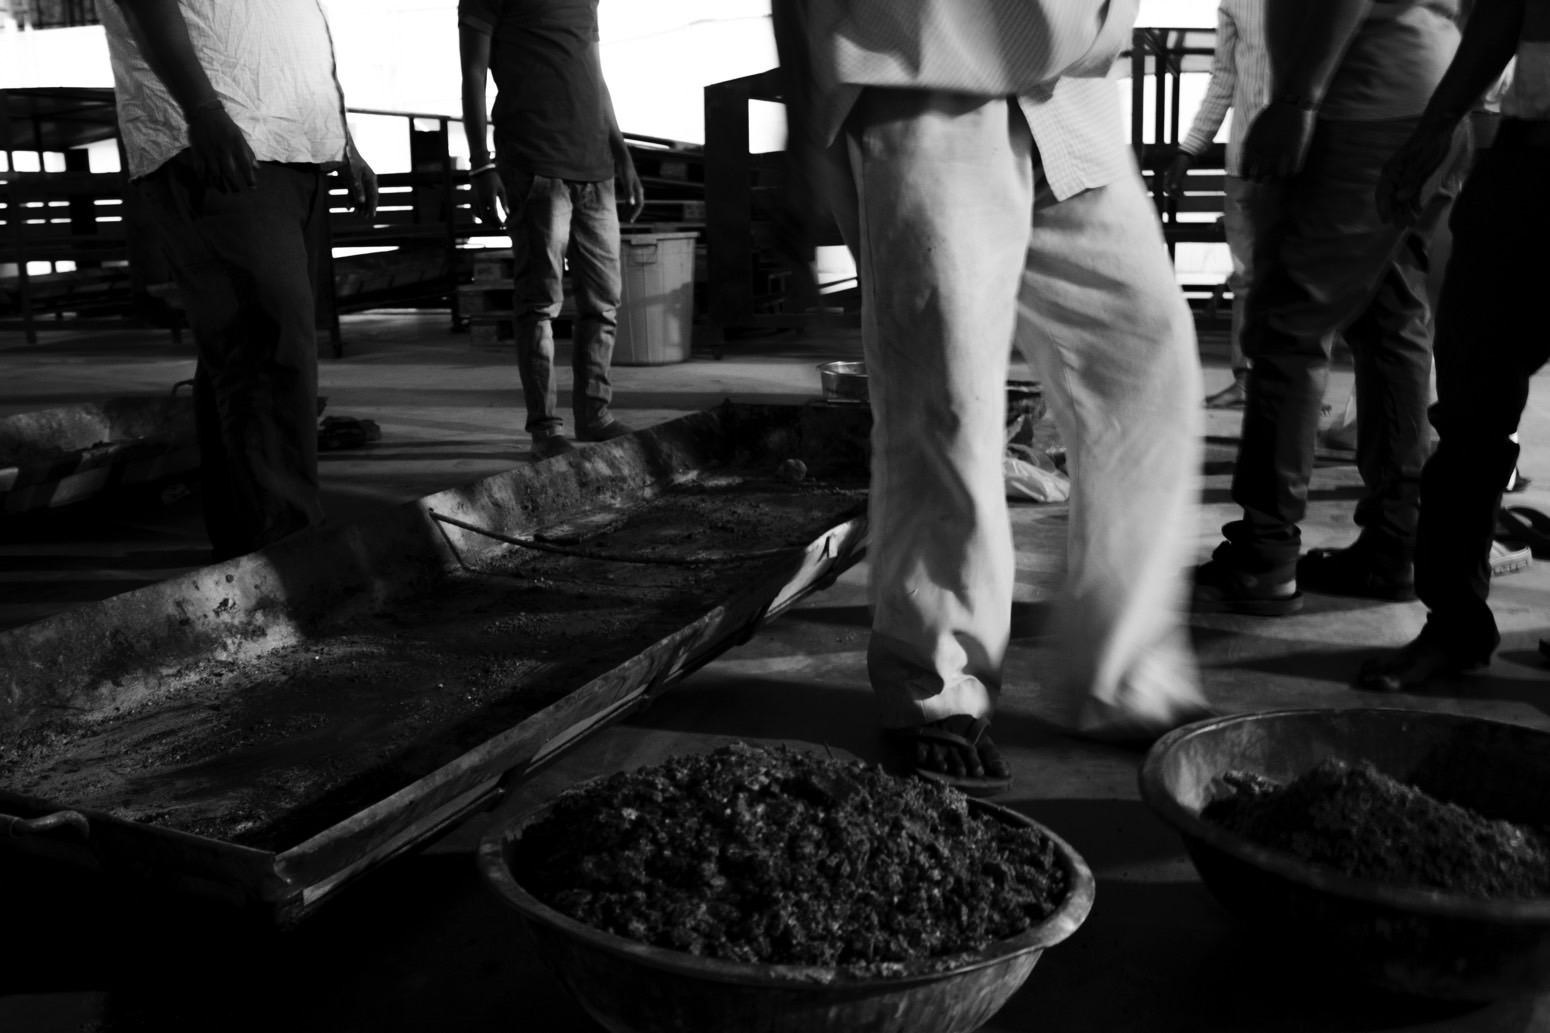 Workers collecting ashes of different dead bodies. Credit: Wamika Singh